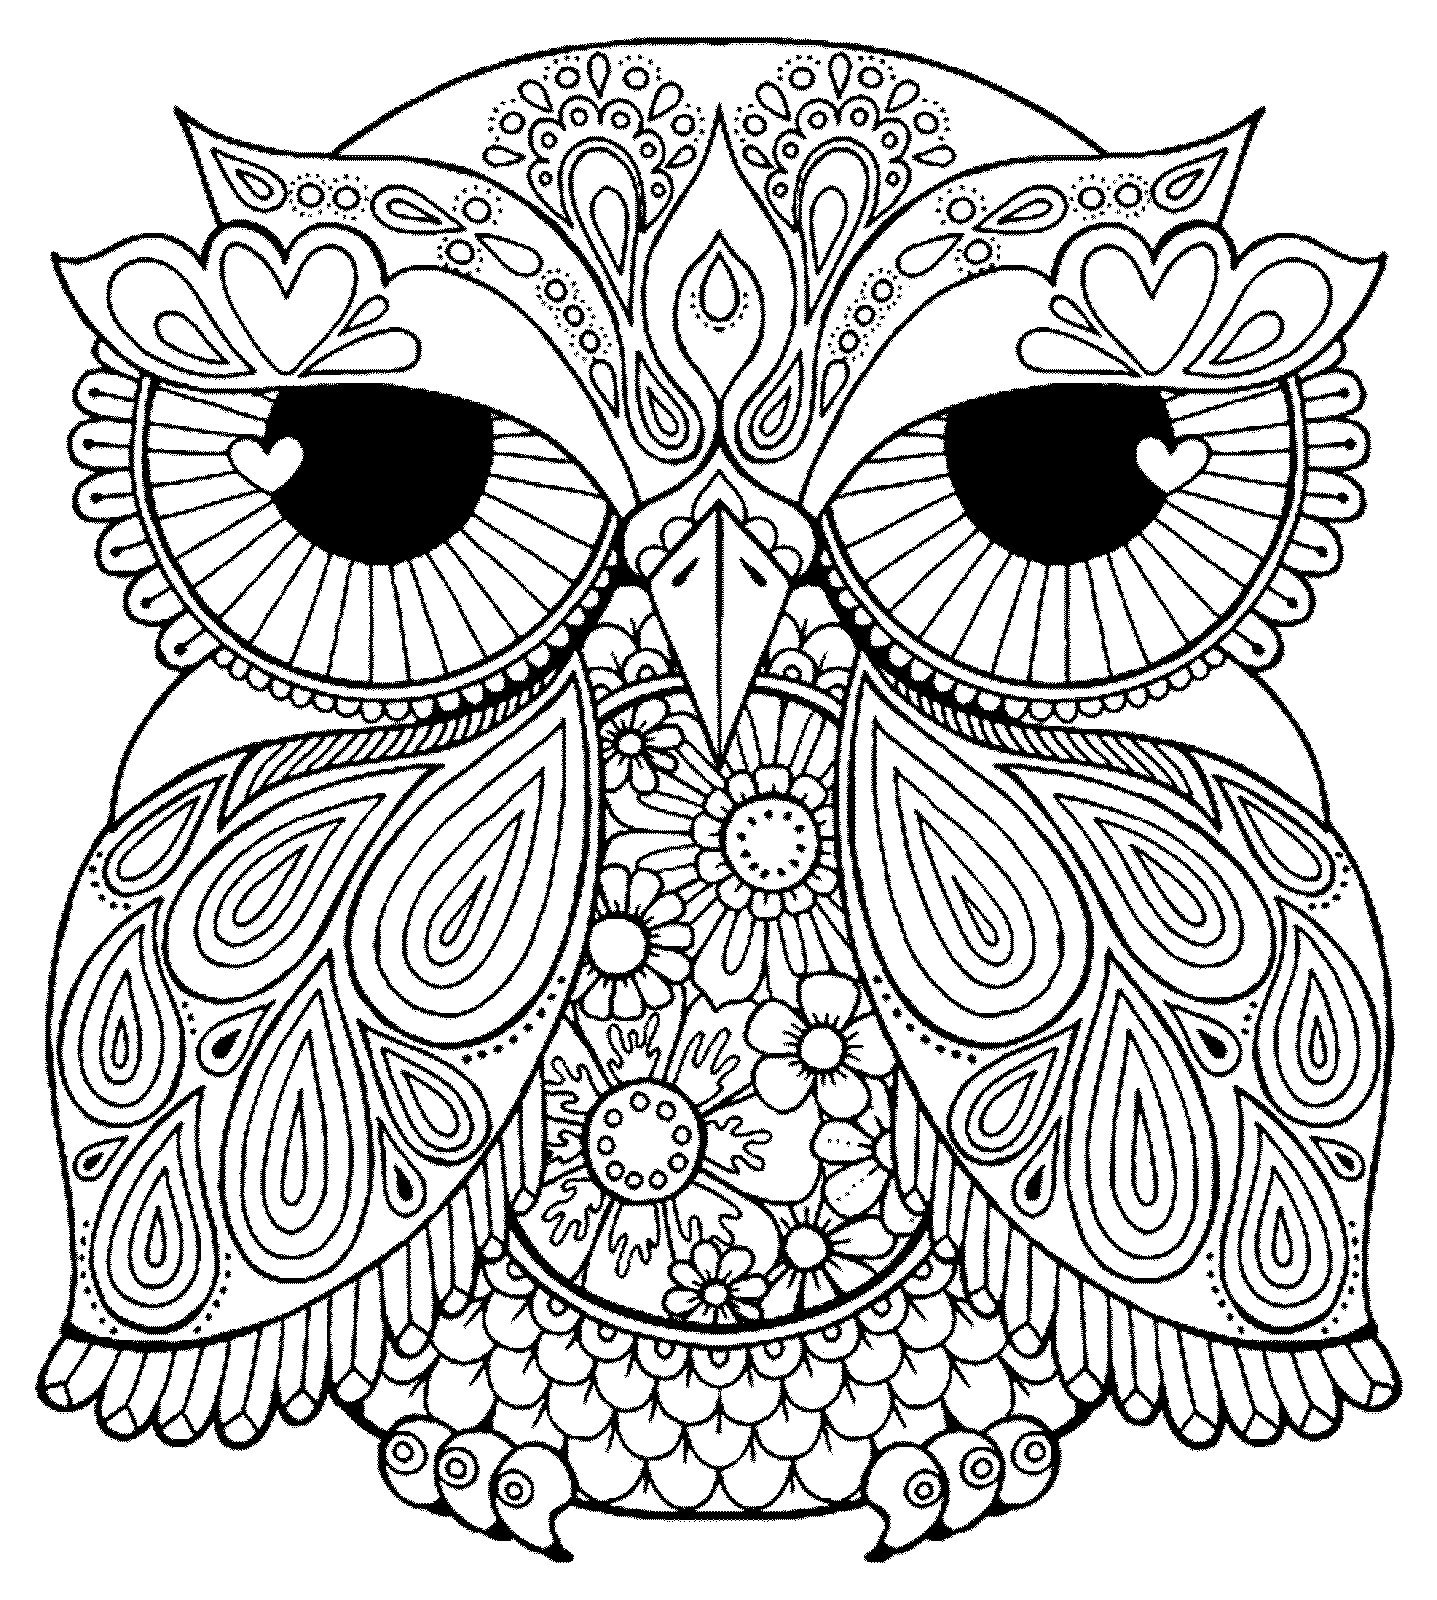 Adult Coloring Pages To Print Adult Coloring Pages Free Printable Wpvote